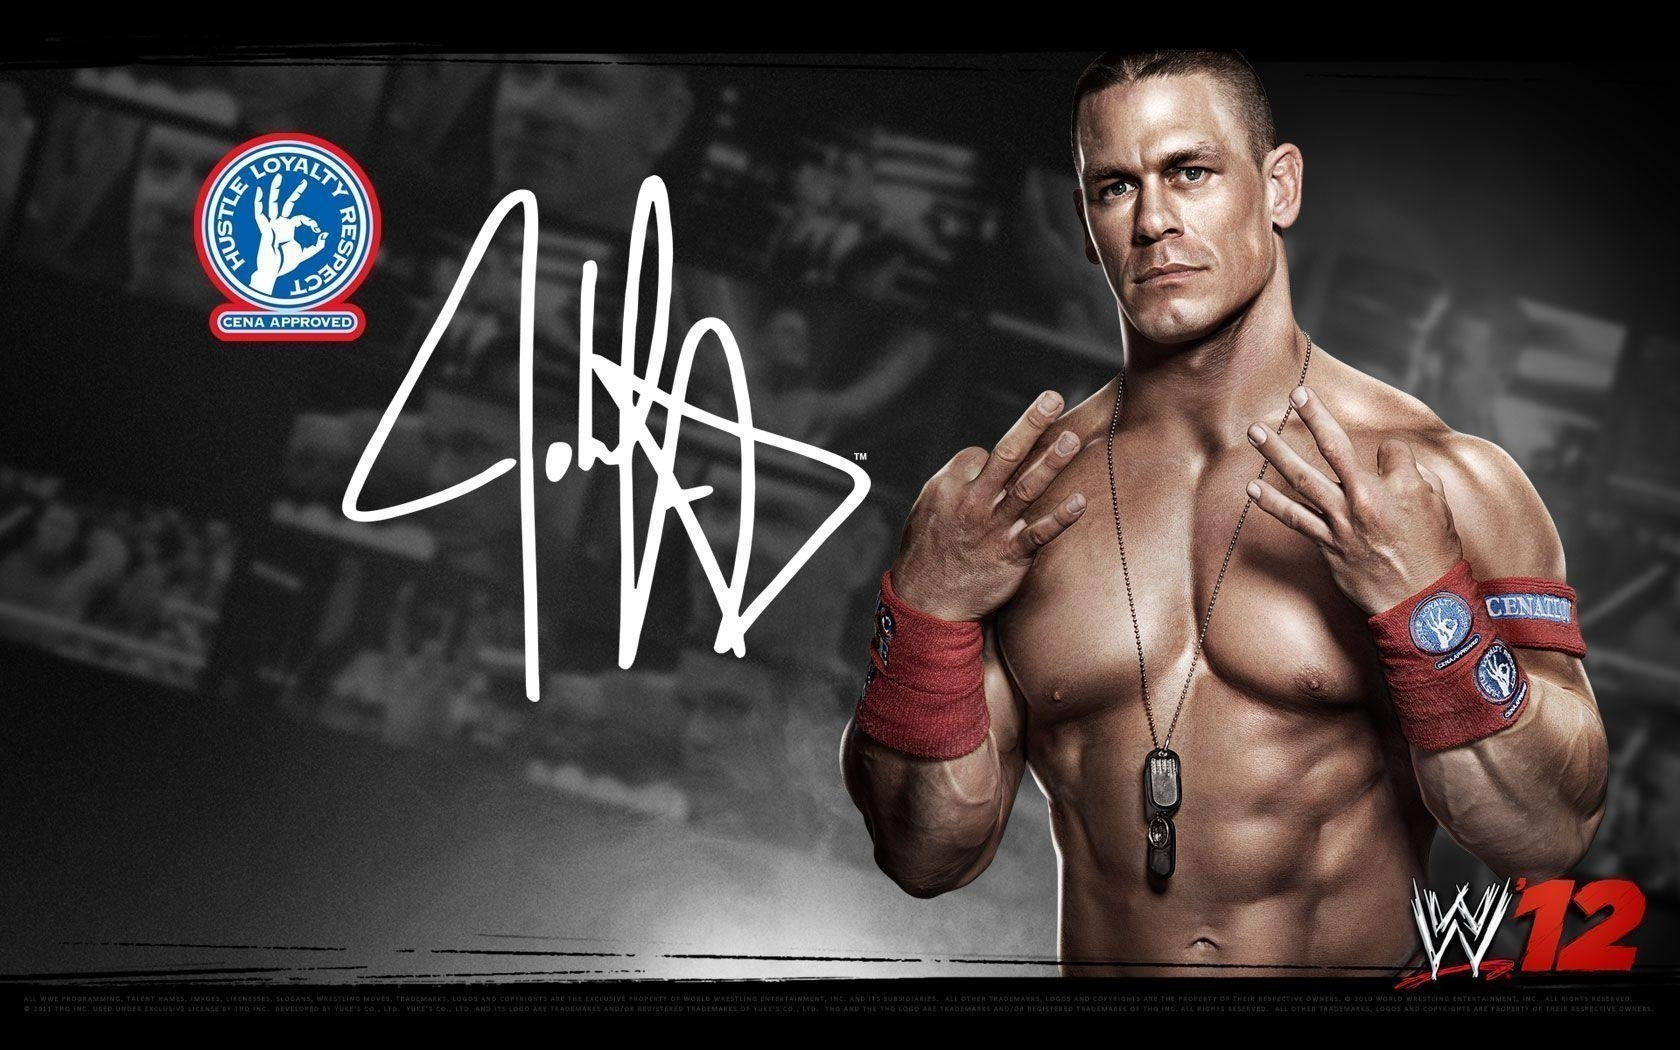 wwe wallpapers john cena - wallpaper cave